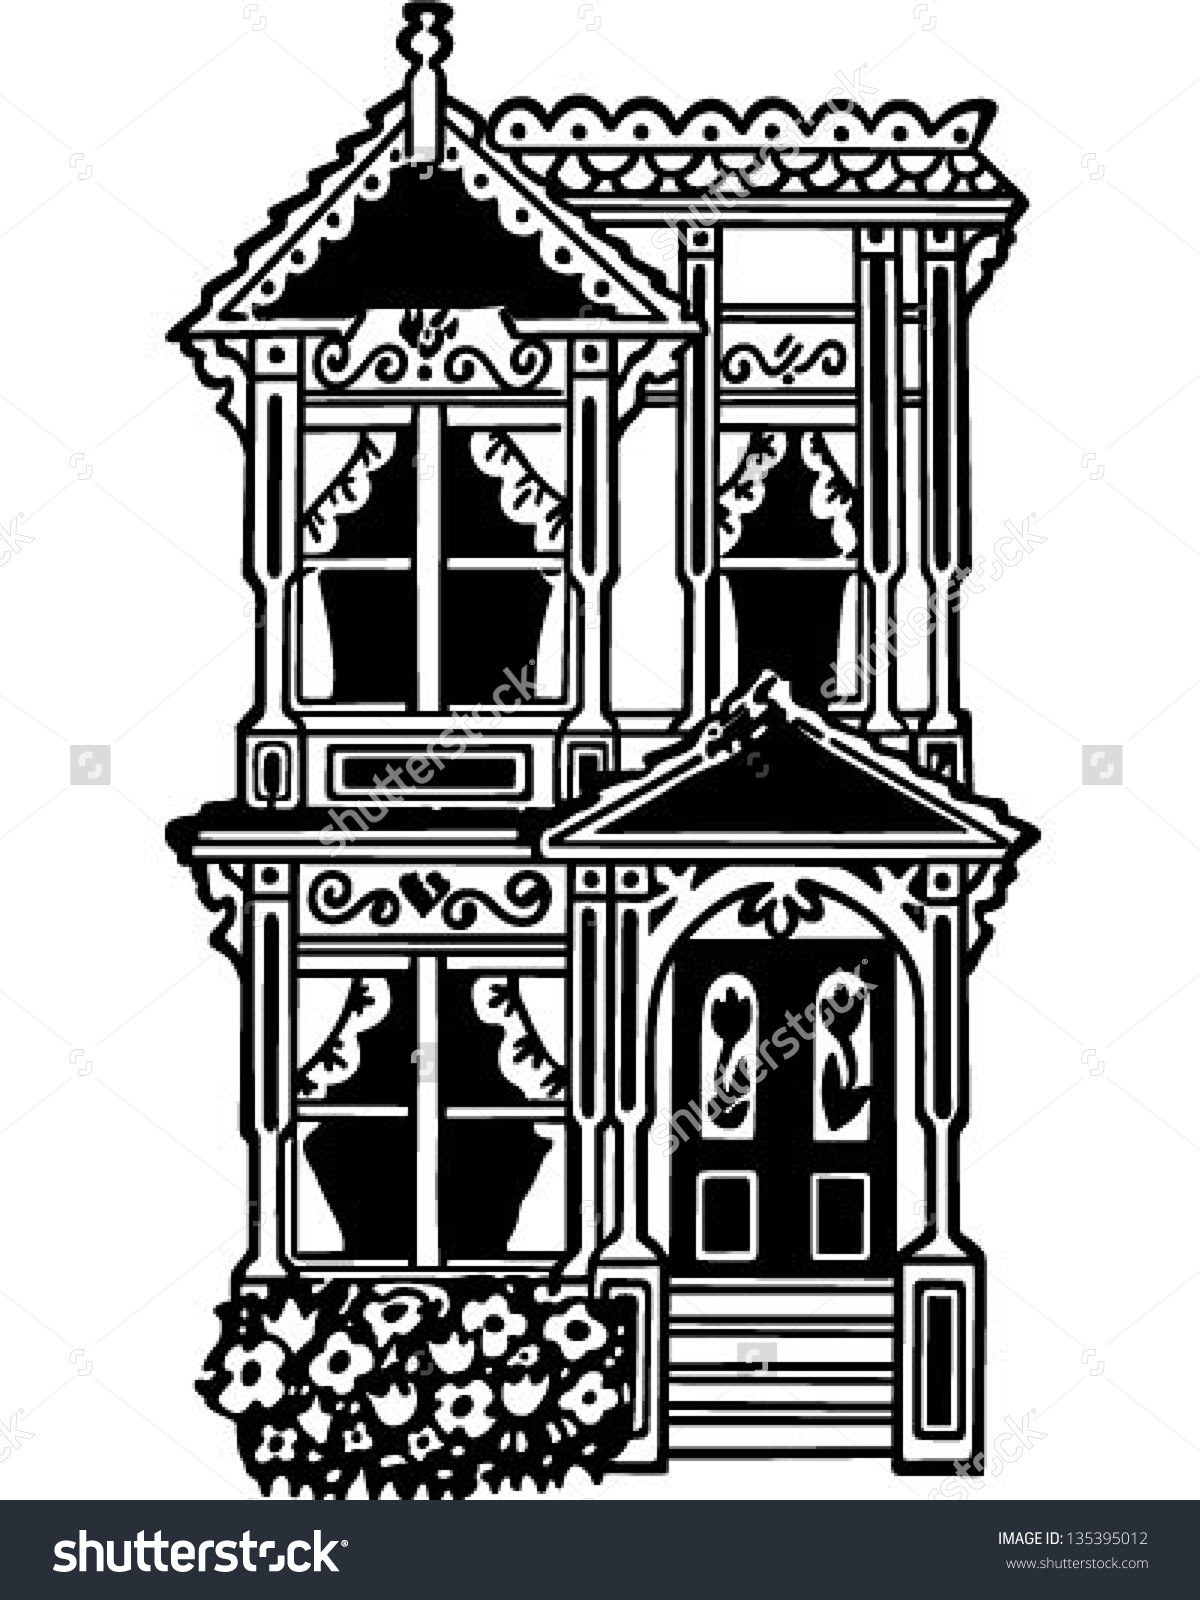 Row house clipart png freeuse download Victorian Row House Retro Clip Art Stock Vector 135395012 ... png freeuse download